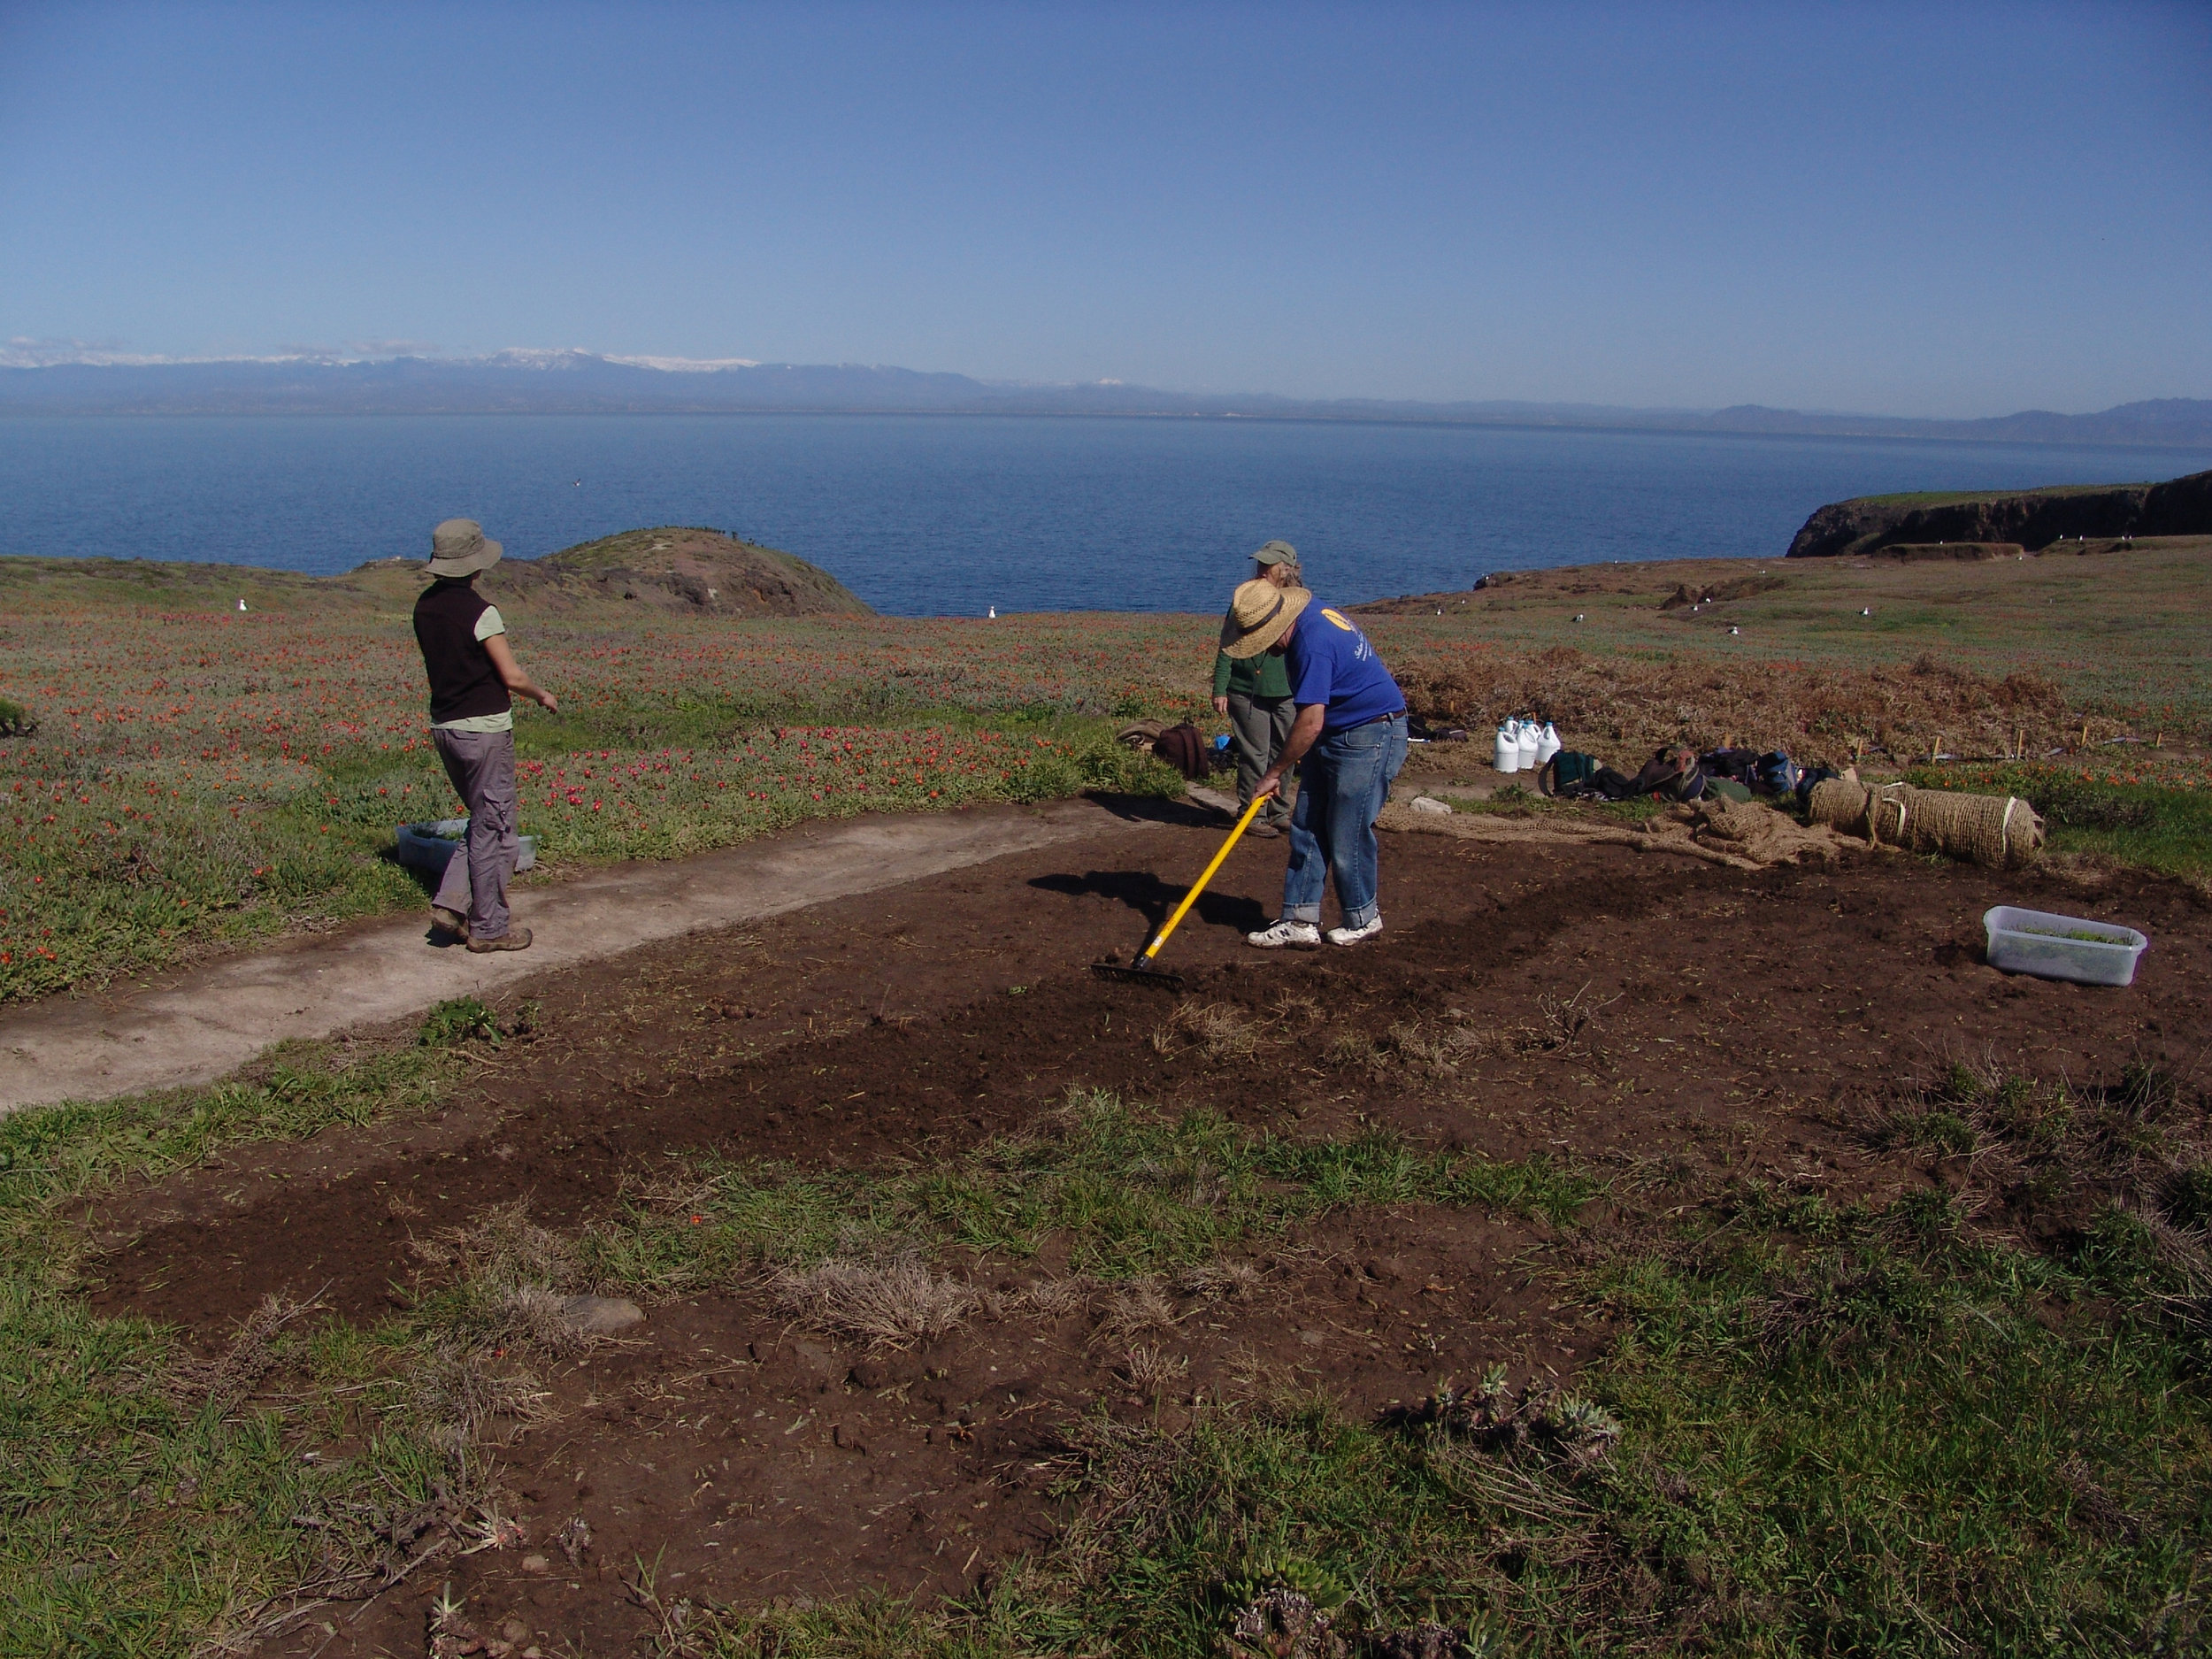 Volunteers Clear Invasive Plants on East Anacapa Island - Following this, CIR installed erosion control netting and planted natives into small holes  cut into the net.